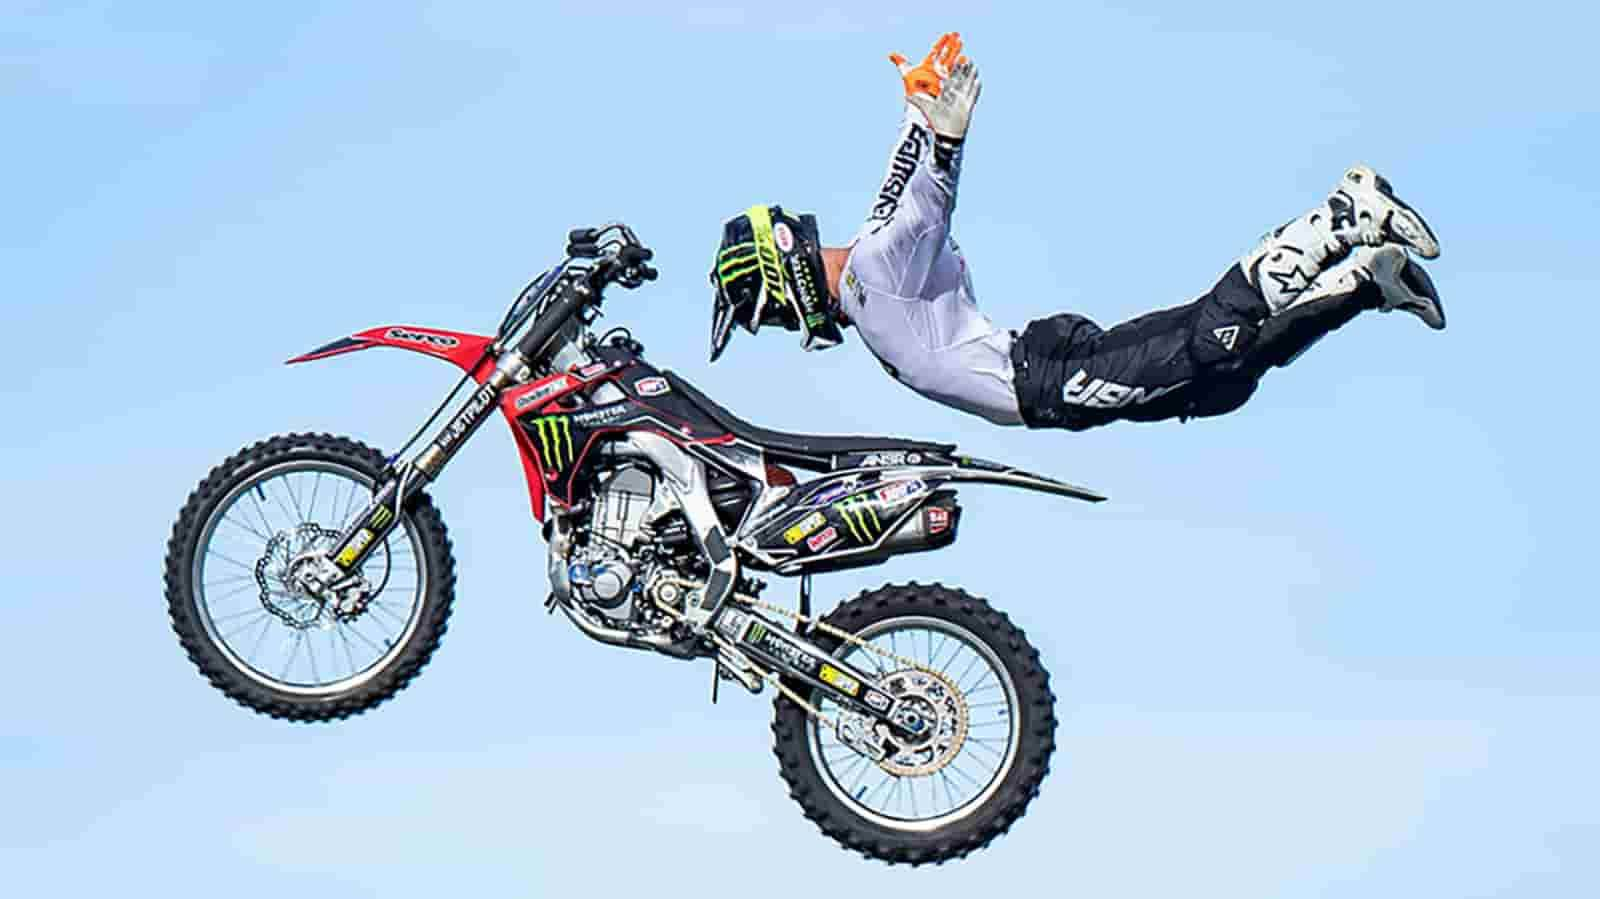 Nitro Circus Live (Rescheduled from 5/15)